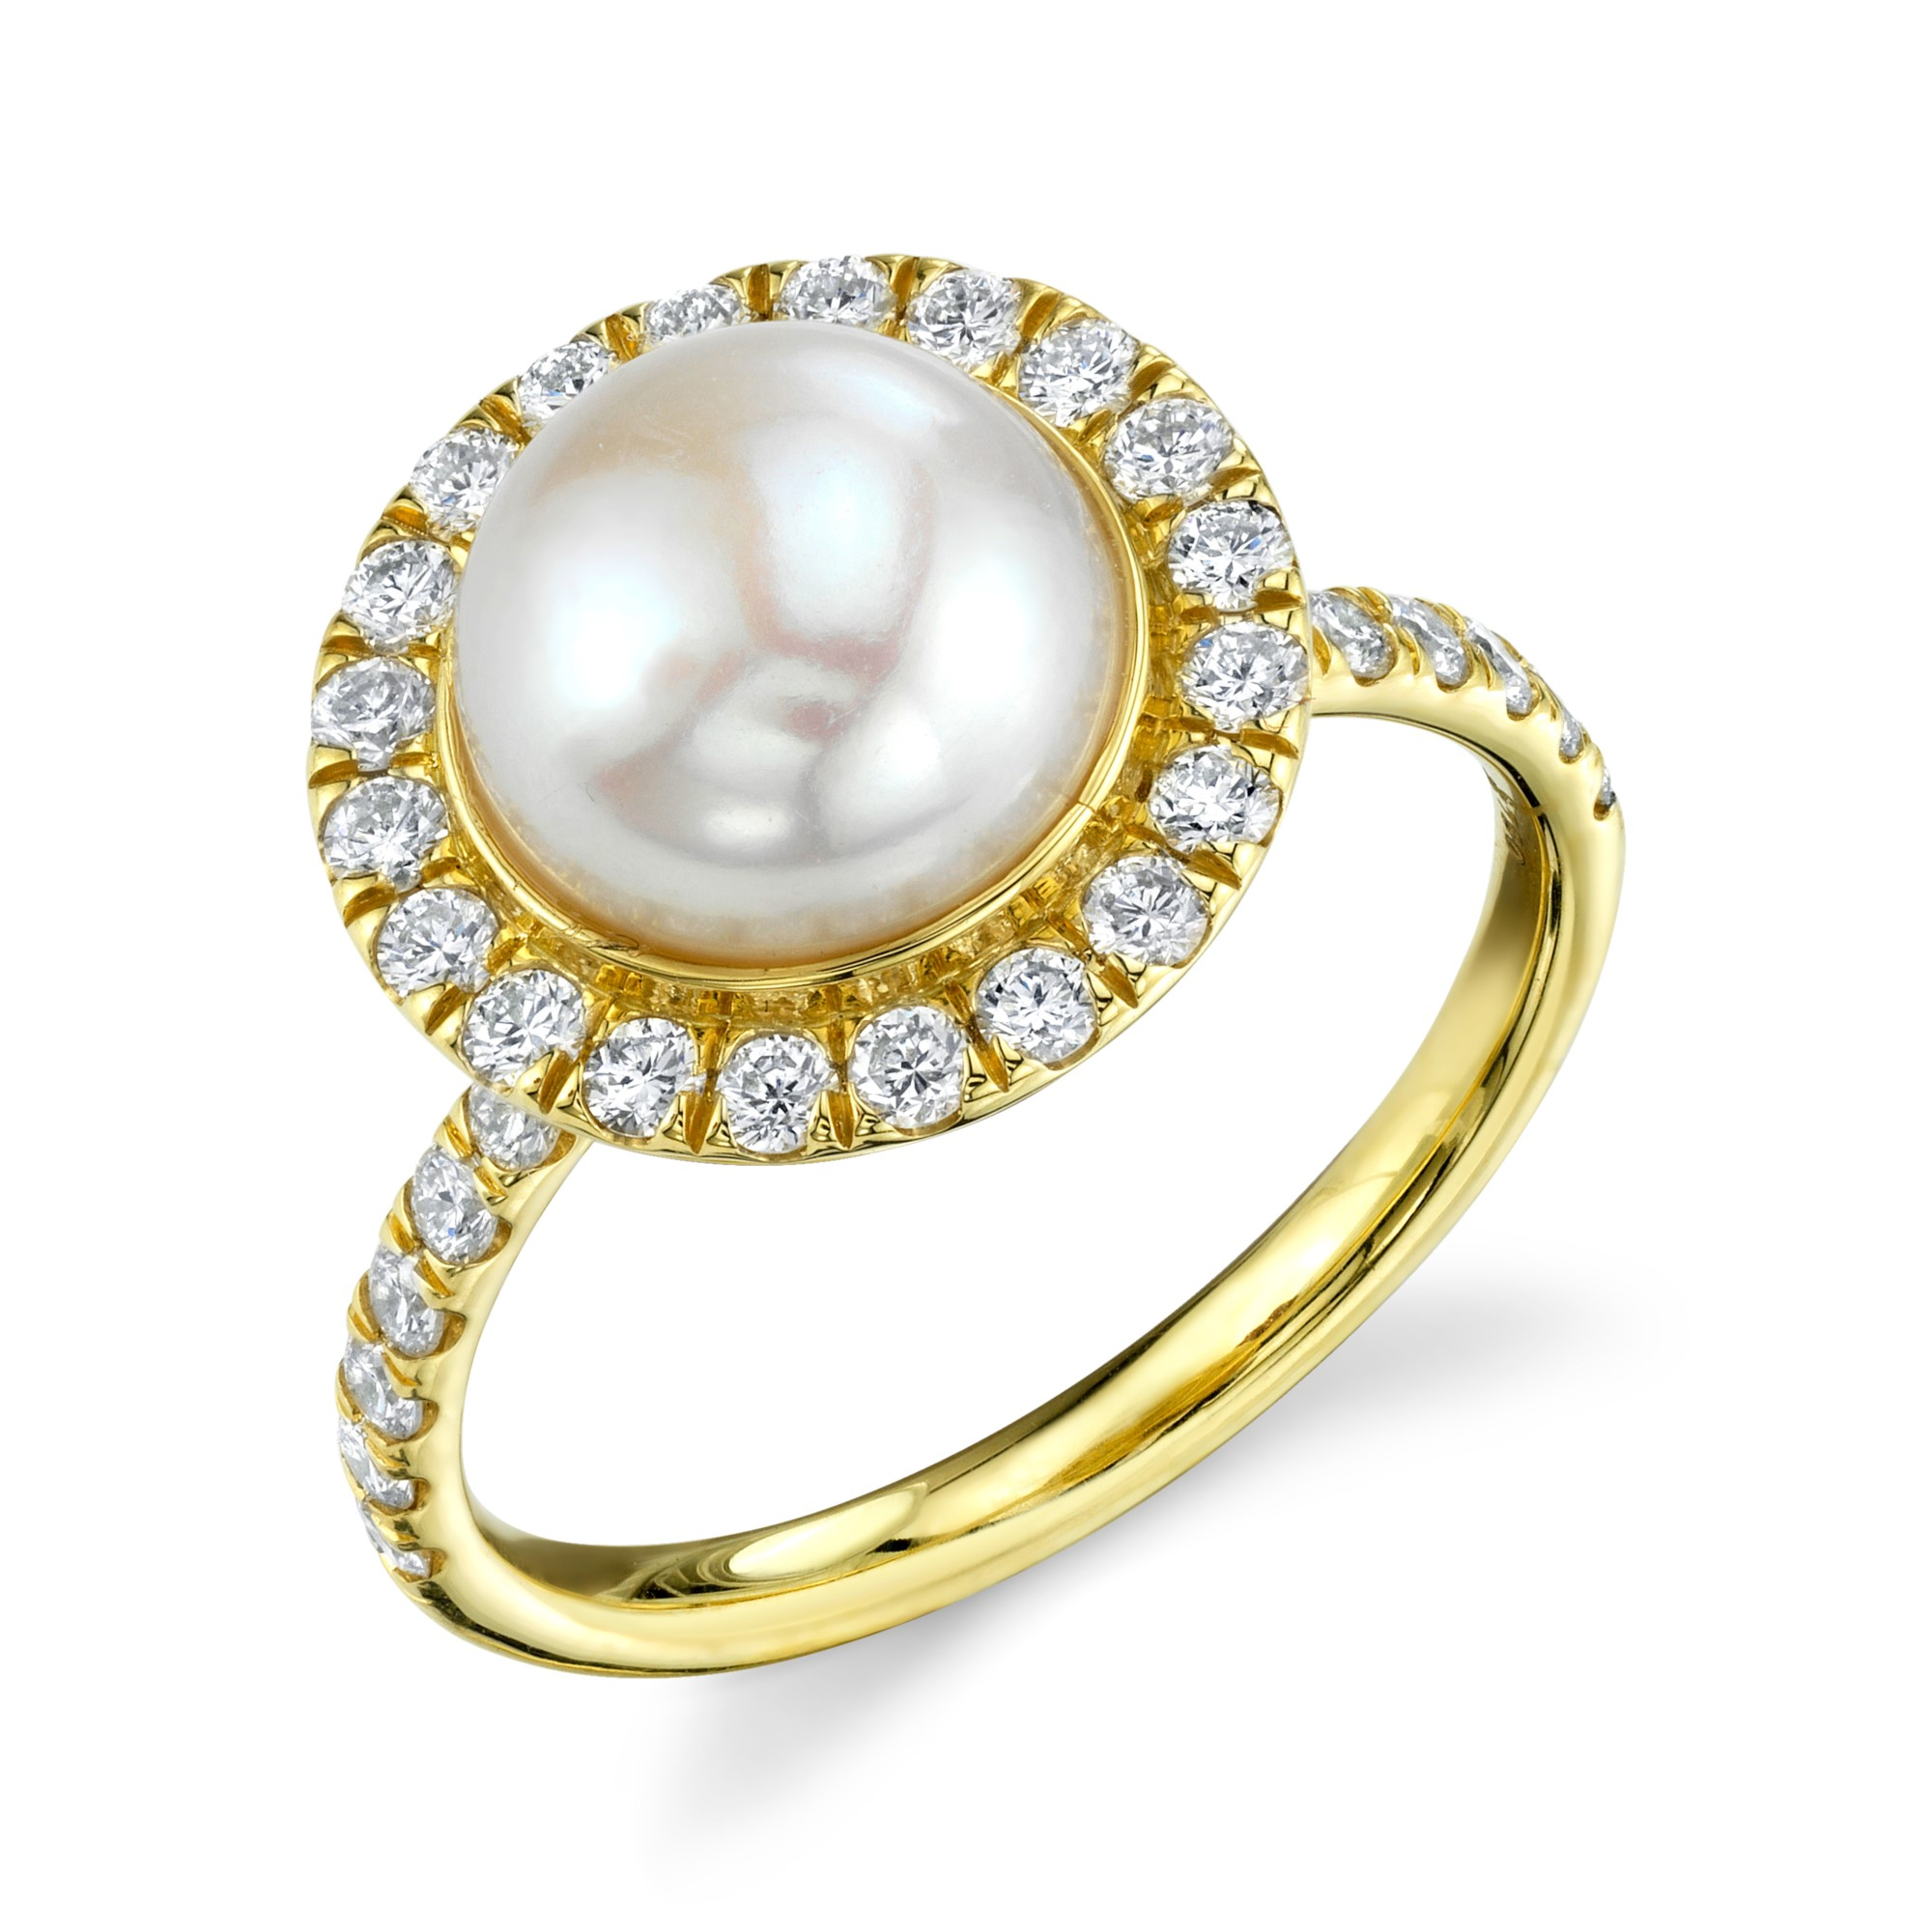 Sloane Street 18K Yellow Gold .65cts  Diamonds Gold Ring with Stones R010C-WP-WD-Y